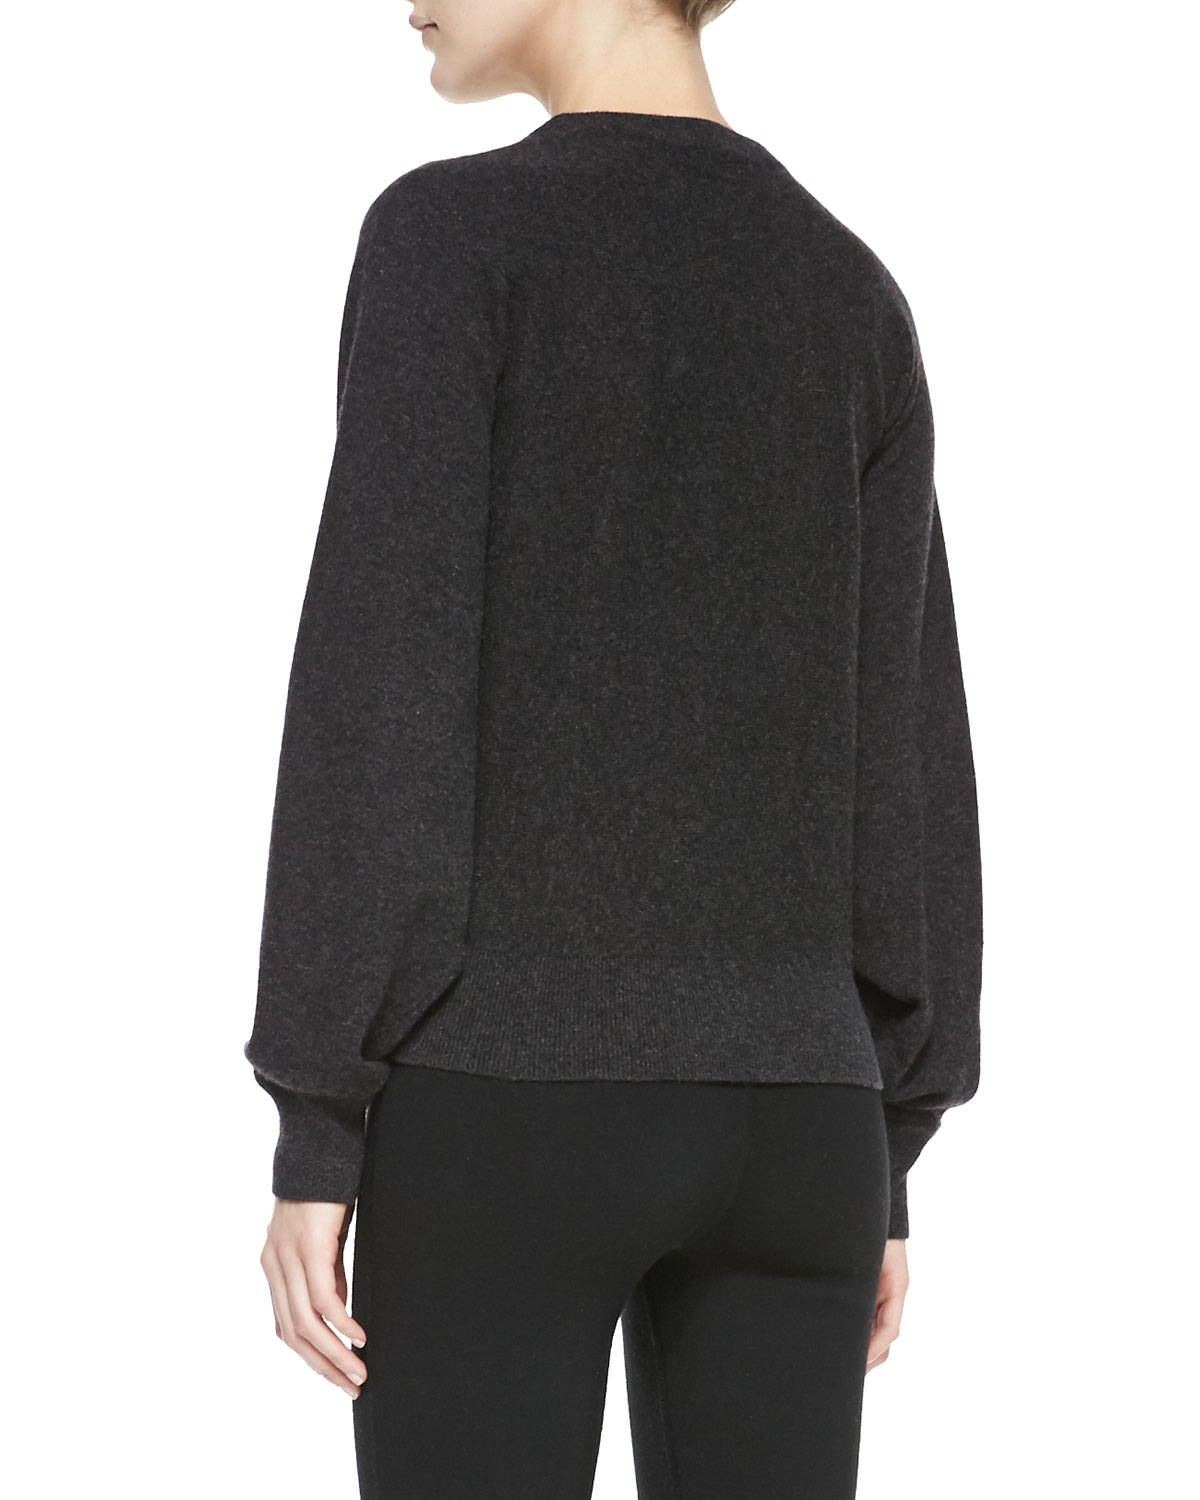 michael kors longsleeve cashmere pullover sweater in gray charcoal lyst. Black Bedroom Furniture Sets. Home Design Ideas